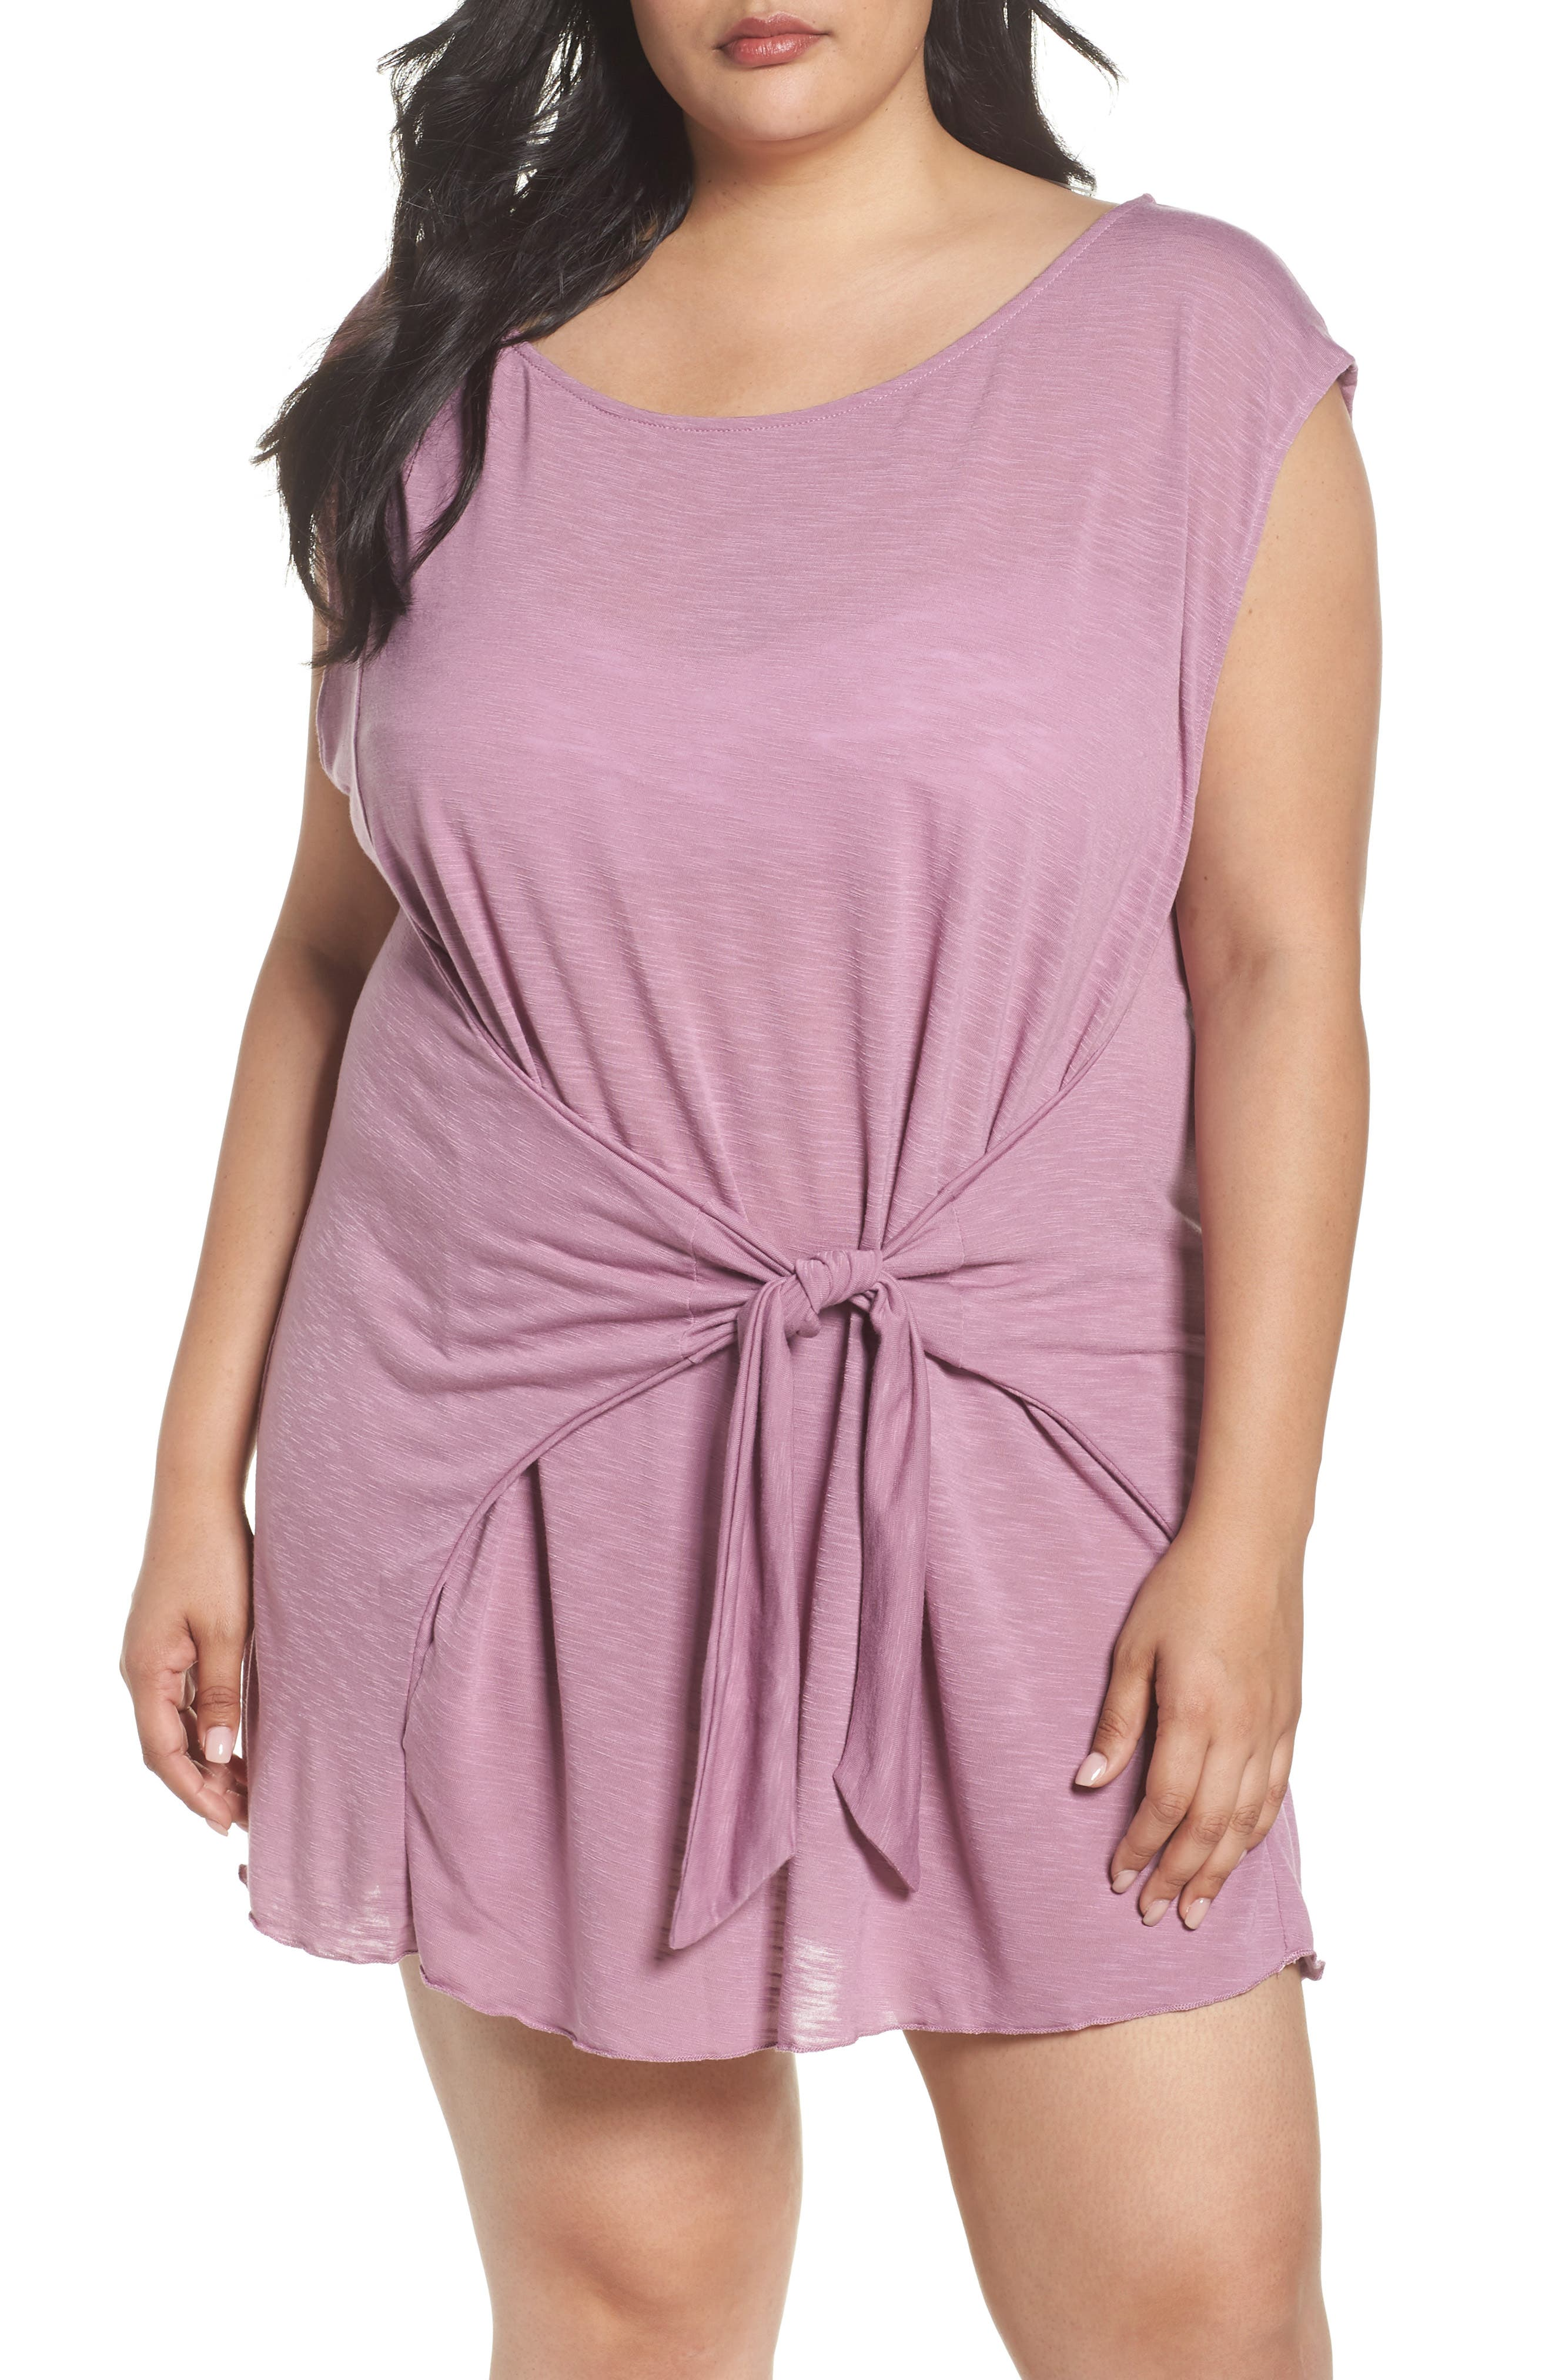 Becca Etc. Breezy Basic Cover-Up Dress (Plus Size)